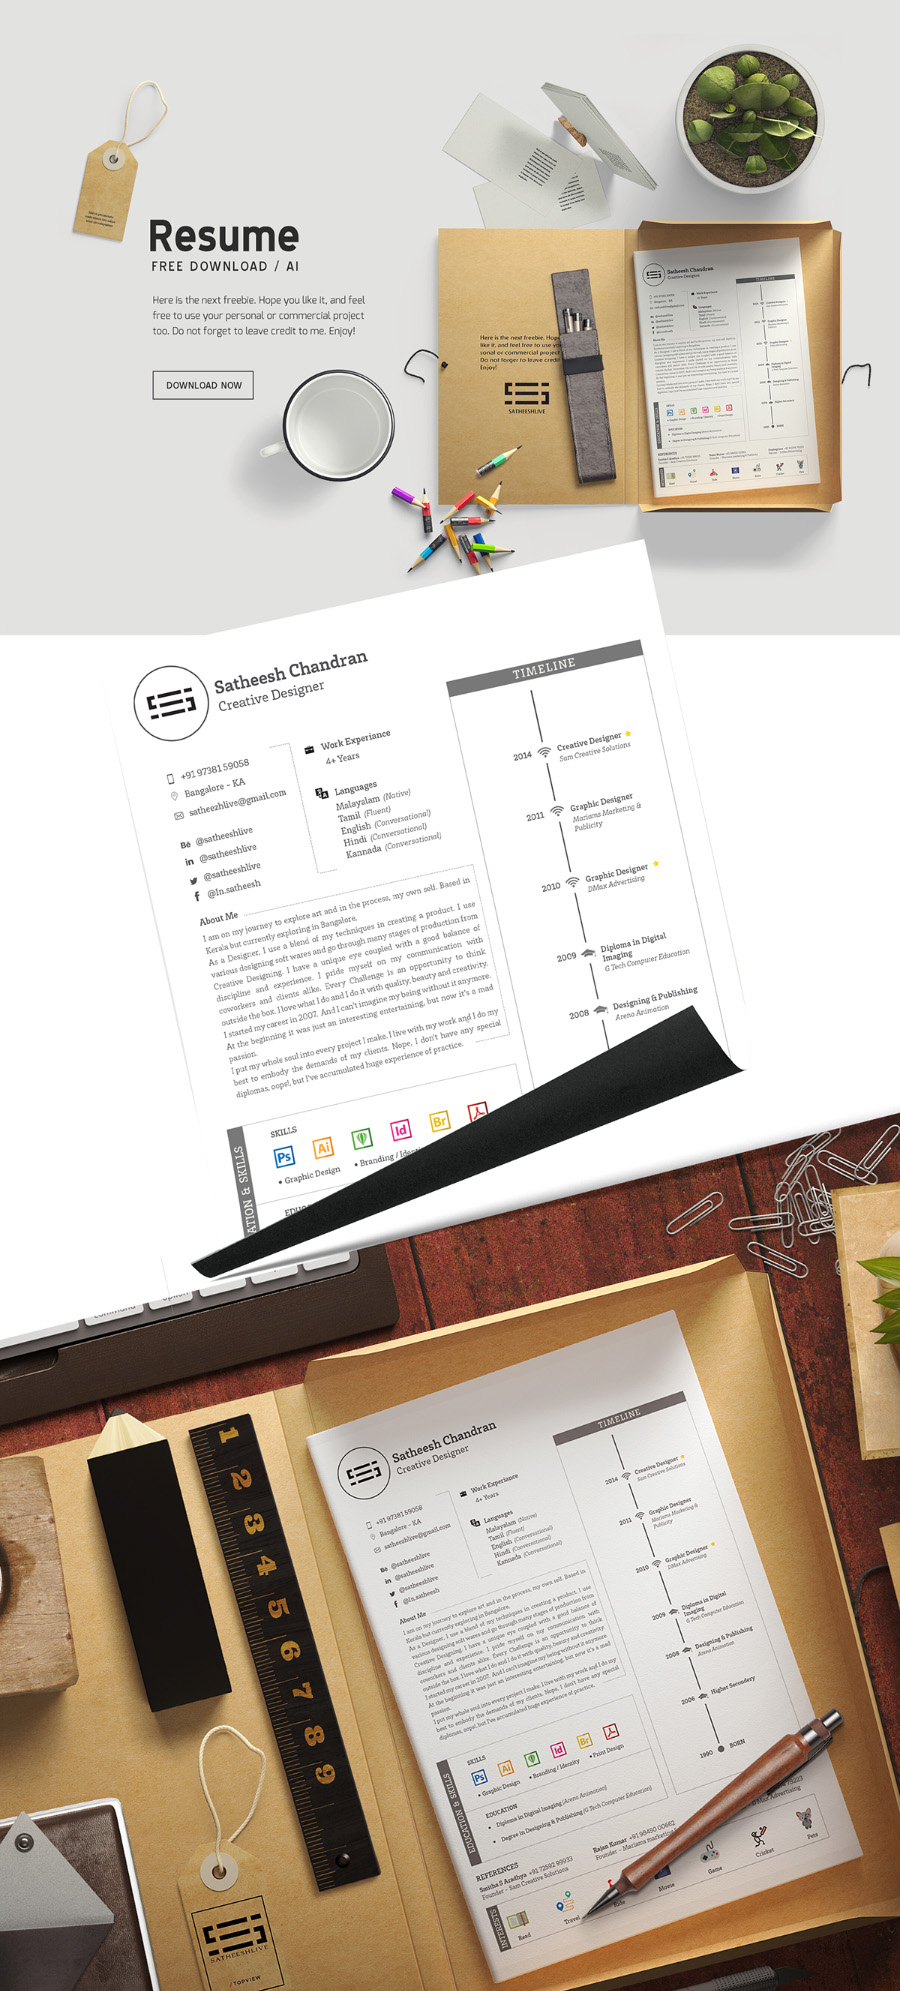 Free Handy Resume Template  Free Design Resources